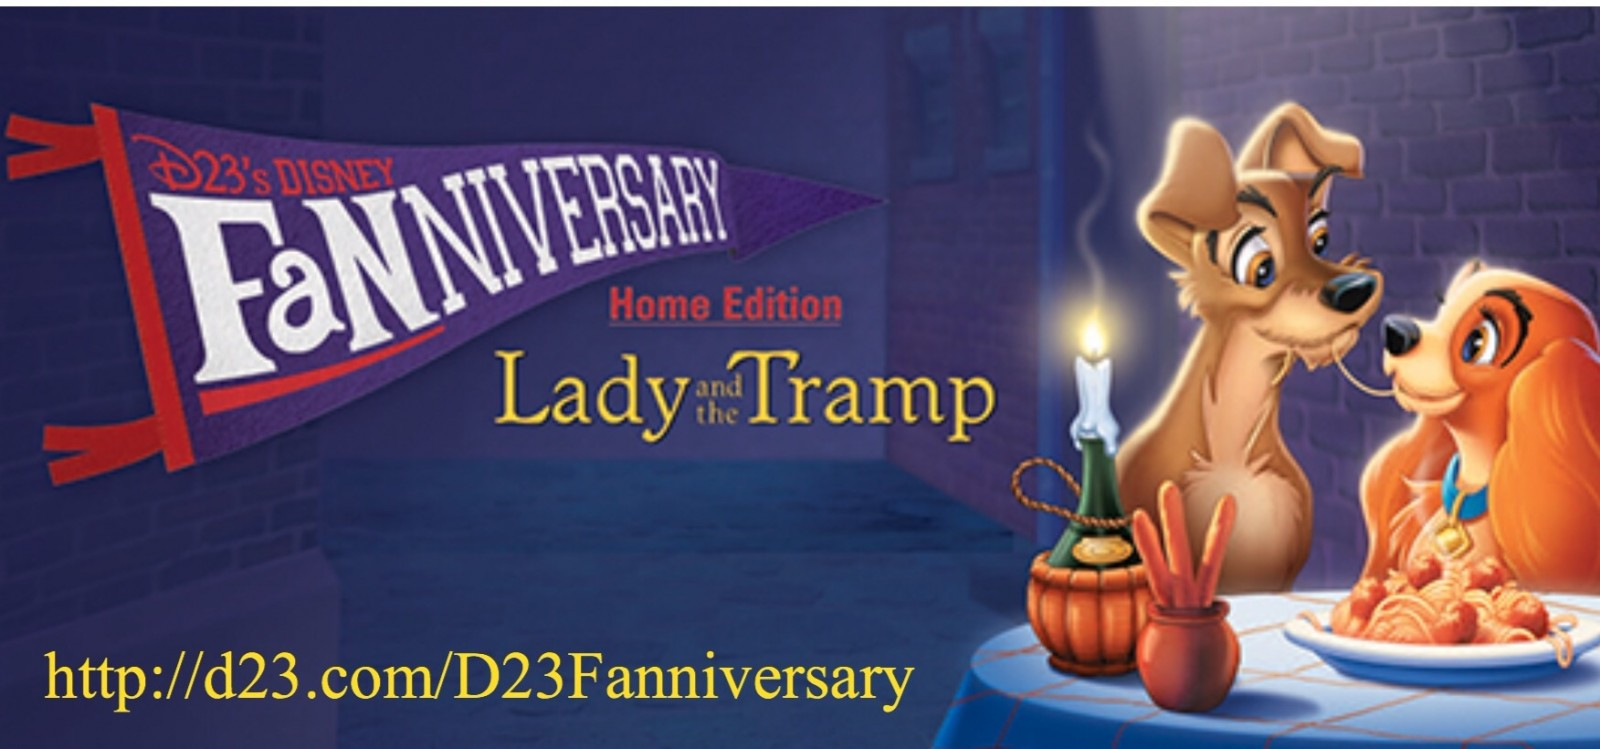 Fun Facts Lady and the Tramp D23 Fanniversary Home Edition Website